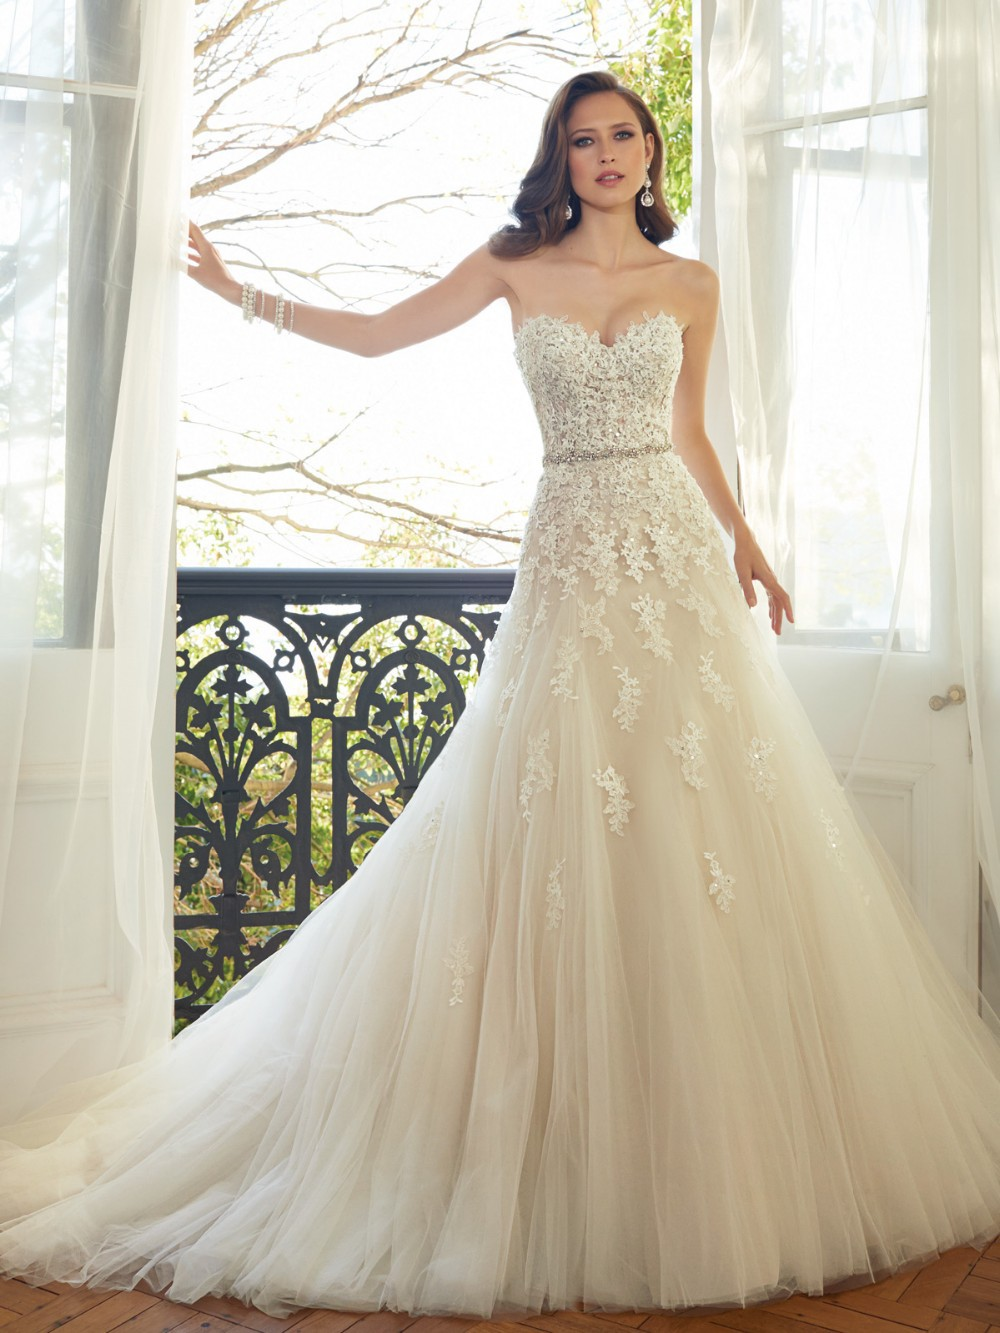 Sweetheart Light Champagne Lace Applique Wedding Dress With Color Beading Sash Bridal Gowns In Stock Robe